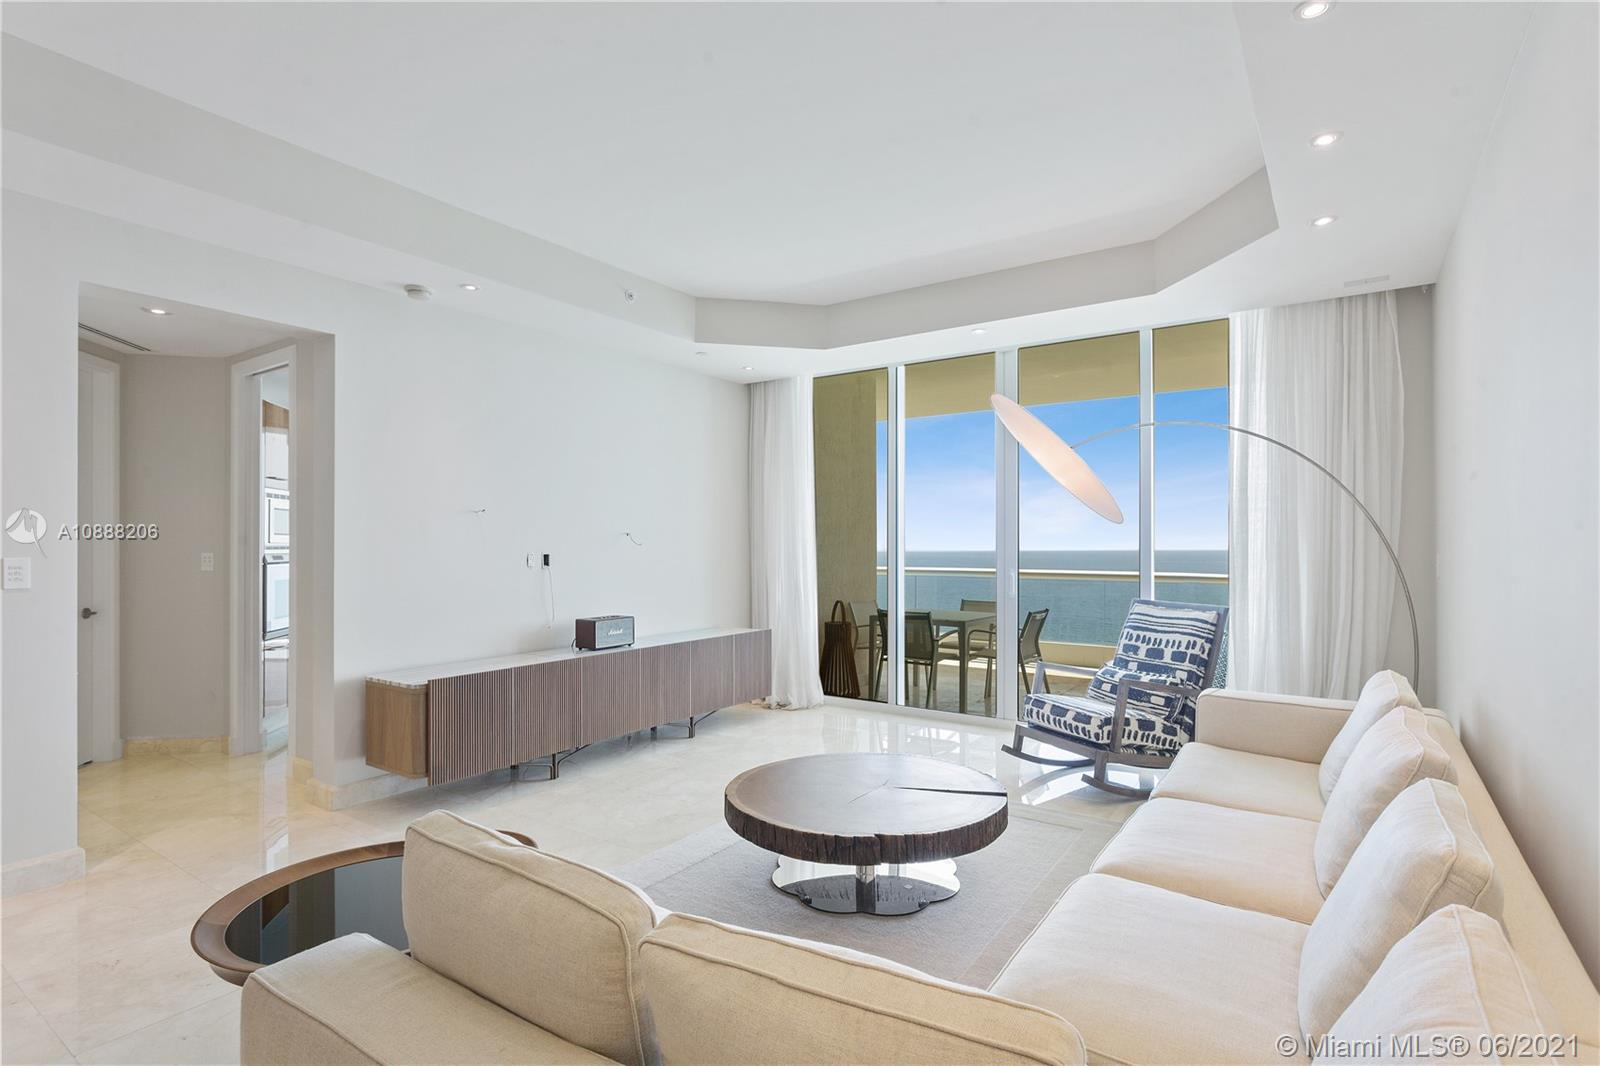 SPECTACULAR 2BED/2.5BATH RESIDENCE IN THE SKY, WITH THE FABULOUS LIFESTYLE AT THE PRESTIGEOUS AND DESIRABLE TURNBERRY OCEAN COLONY! THIS MAGNIFICENT UNIT FEATURES BREATHTAKING, UNBOSTRUCTED DIRECT OCEAN VIEWS FROM EVERY ROOM, TASTEFULLY DECORATED WITH THE FINEST FURNITURE, LUXURIOUS FINISHES AND UNBELIEVABLE DETAILS!